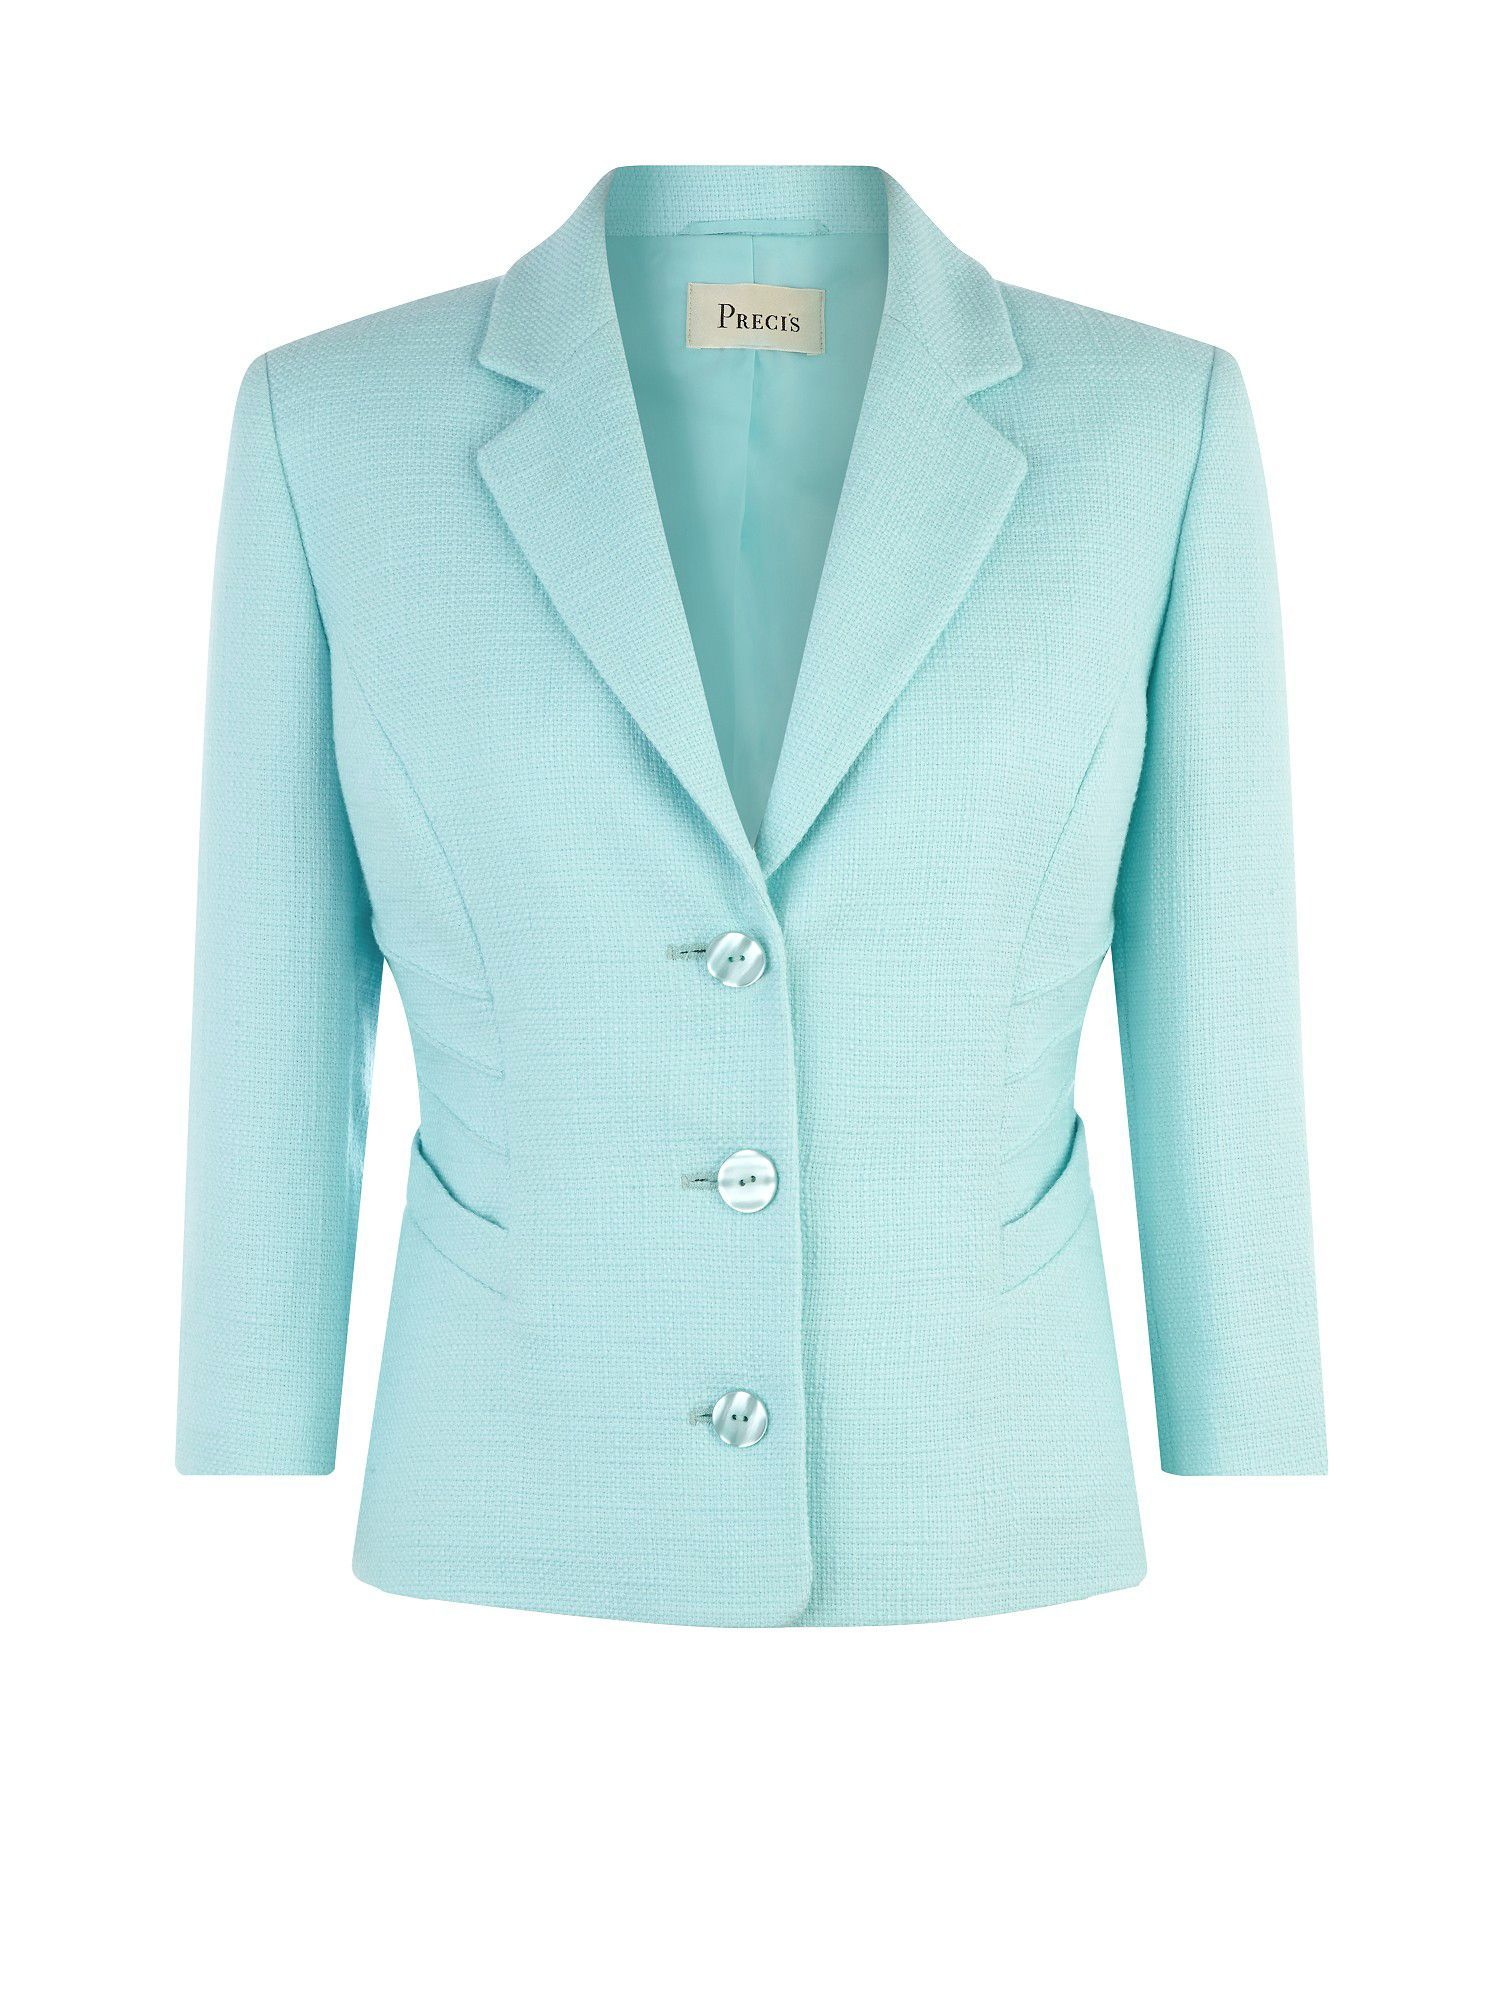 Take your tailoring to the next level with this bright aqua jacket ...